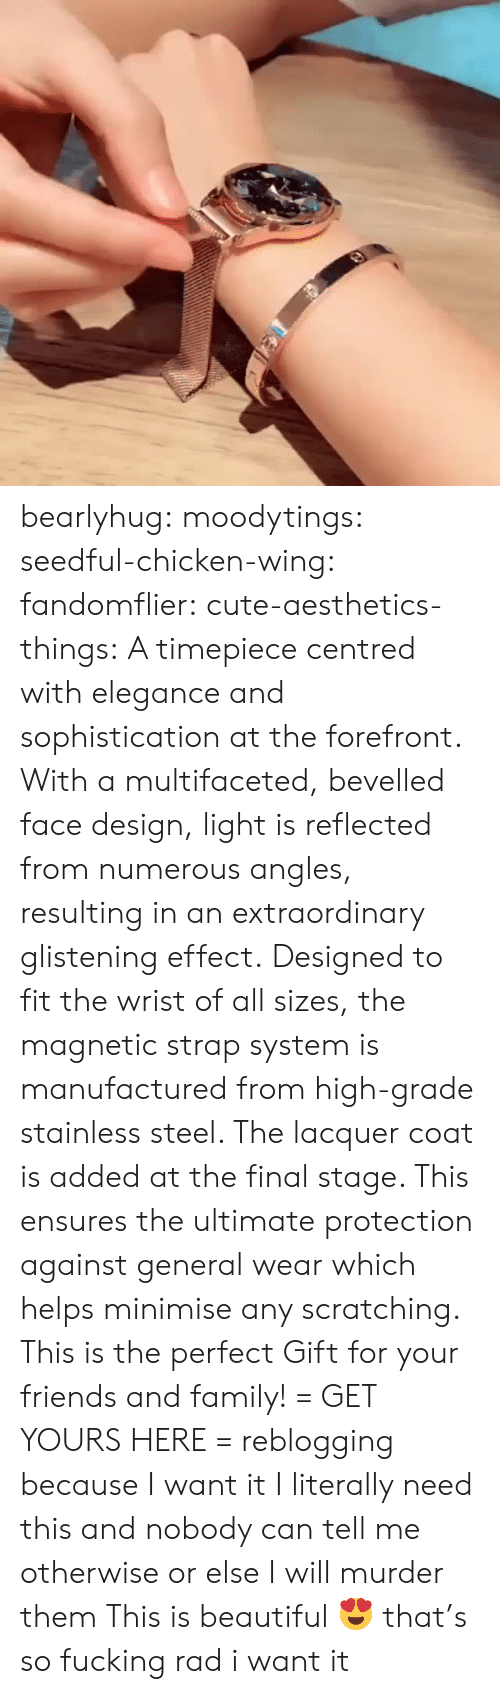 wing: bearlyhug: moodytings:   seedful-chicken-wing:  fandomflier:  cute-aesthetics-things:   A timepiece centred with elegance and sophistication at the forefront. With a multifaceted, bevelled face design, light is reflected from numerous angles, resulting in an extraordinary glistening effect. Designed to fit the wrist of all sizes, the magnetic strap system is manufactured from high-grade stainless steel. The lacquer coat is added at the final stage. This ensures the ultimate protection against general wear which helps minimise any scratching. This is the perfect Gift for your friends and family! = GET YOURS HERE =   reblogging because I want it  I literally need this and nobody can tell me otherwise or else I will murder them   This is beautiful 😍   that's so fucking rad i want it